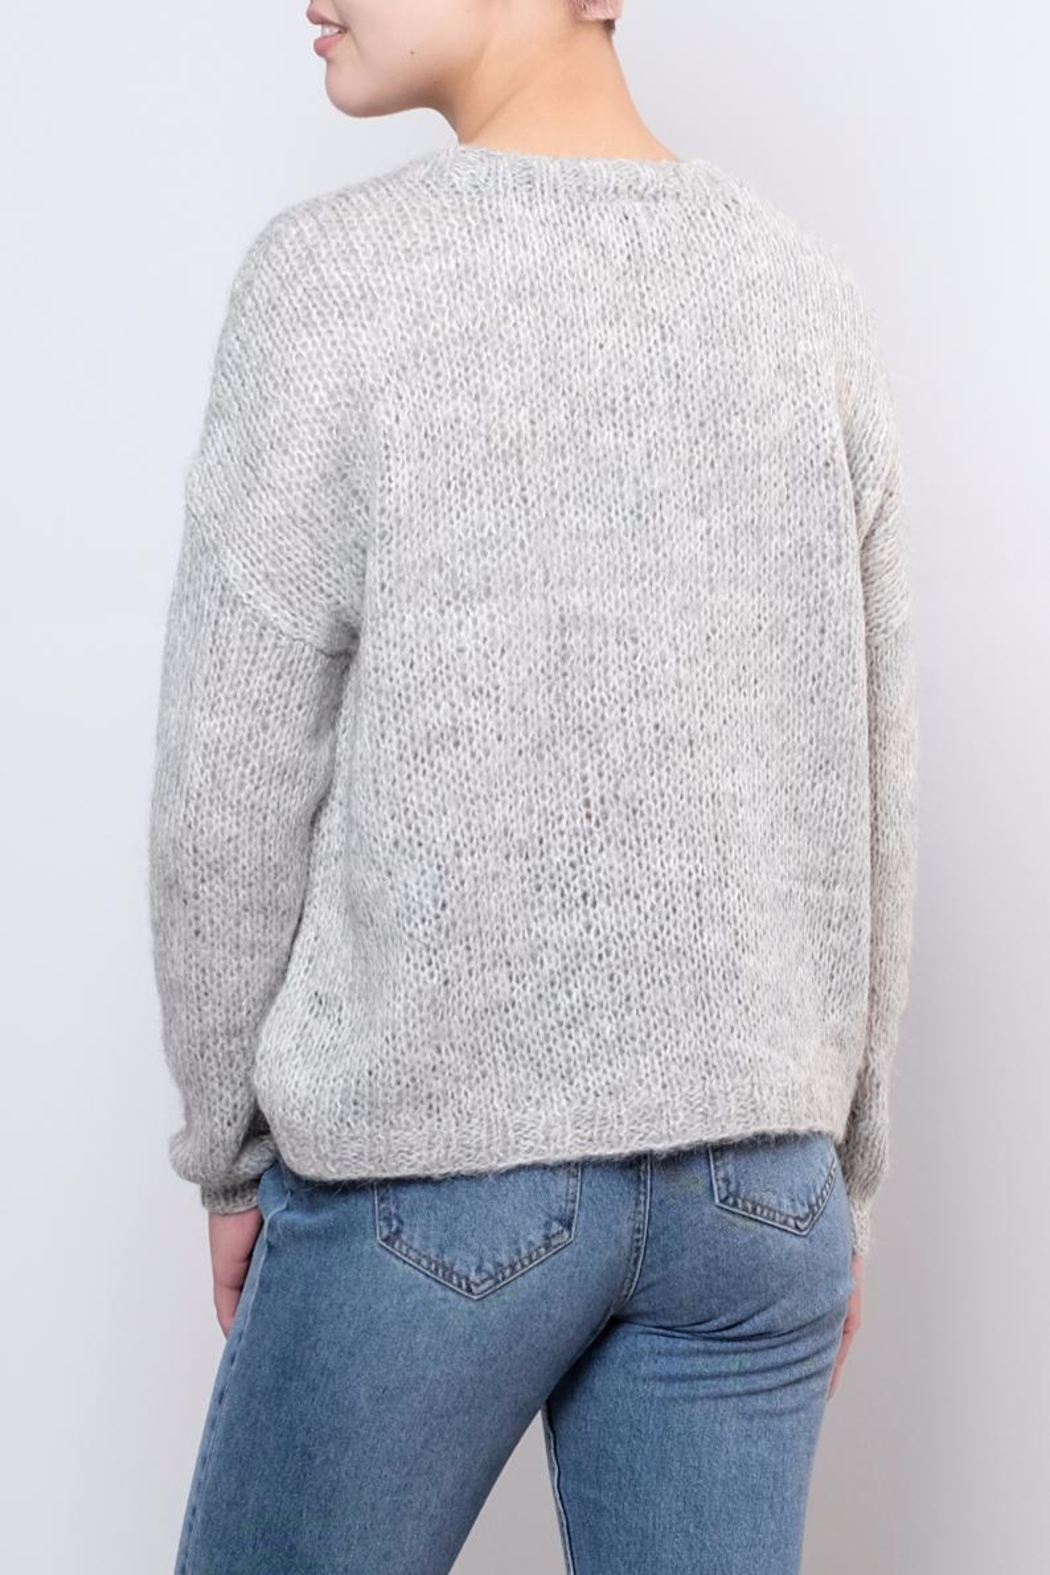 Noisy May Janis Knit Pullover Top - Side Cropped Image